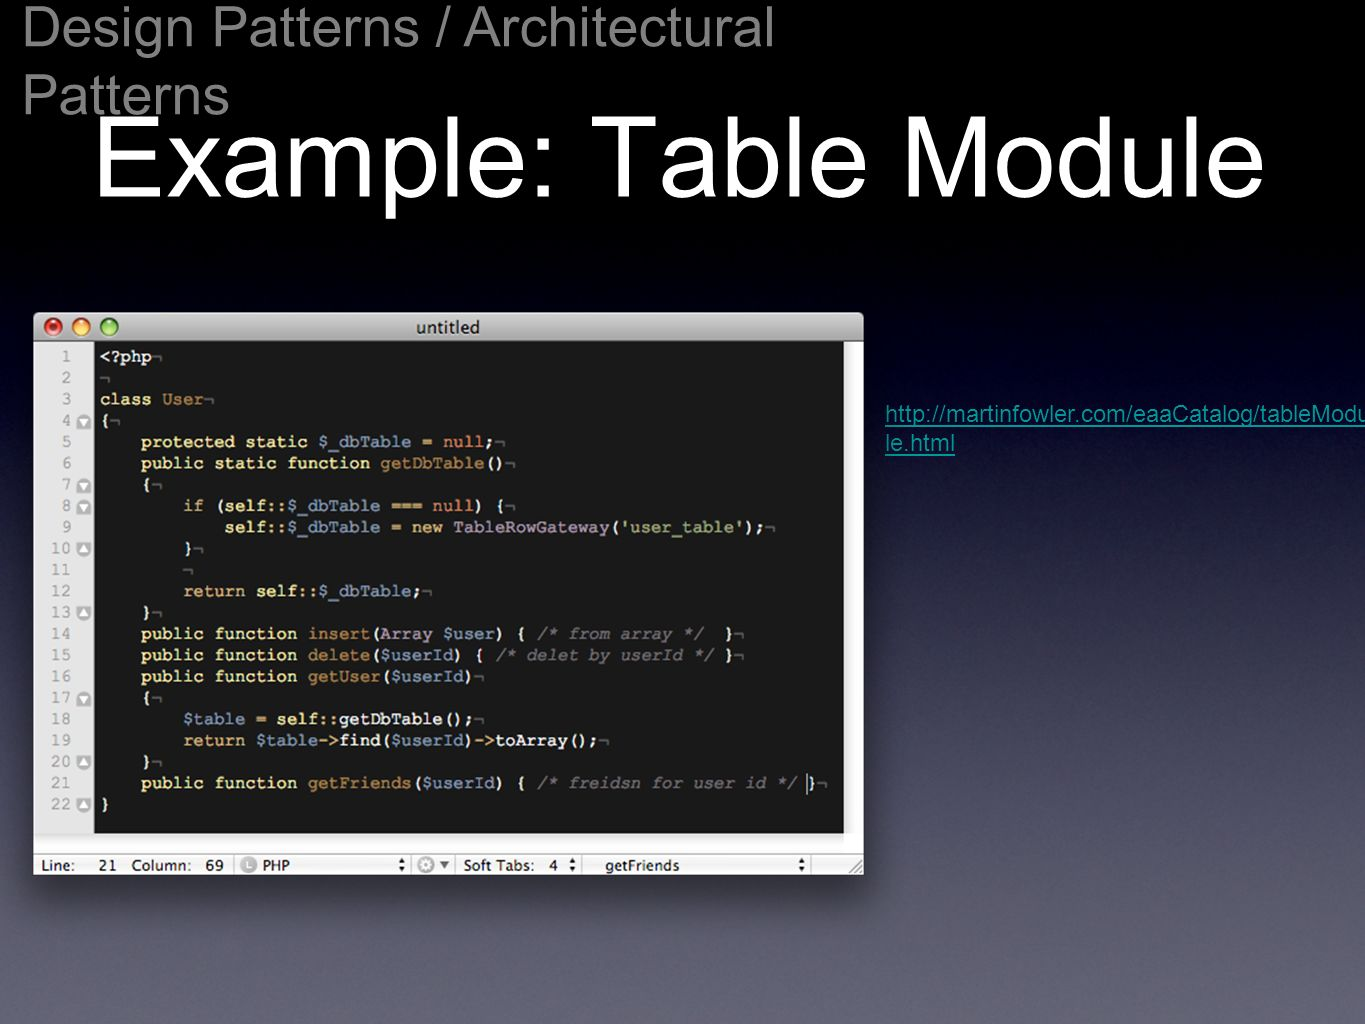 Example: Table Module http://martinfowler.com/eaaCatalog/tableModu le.html Design Patterns / Architectural Patterns